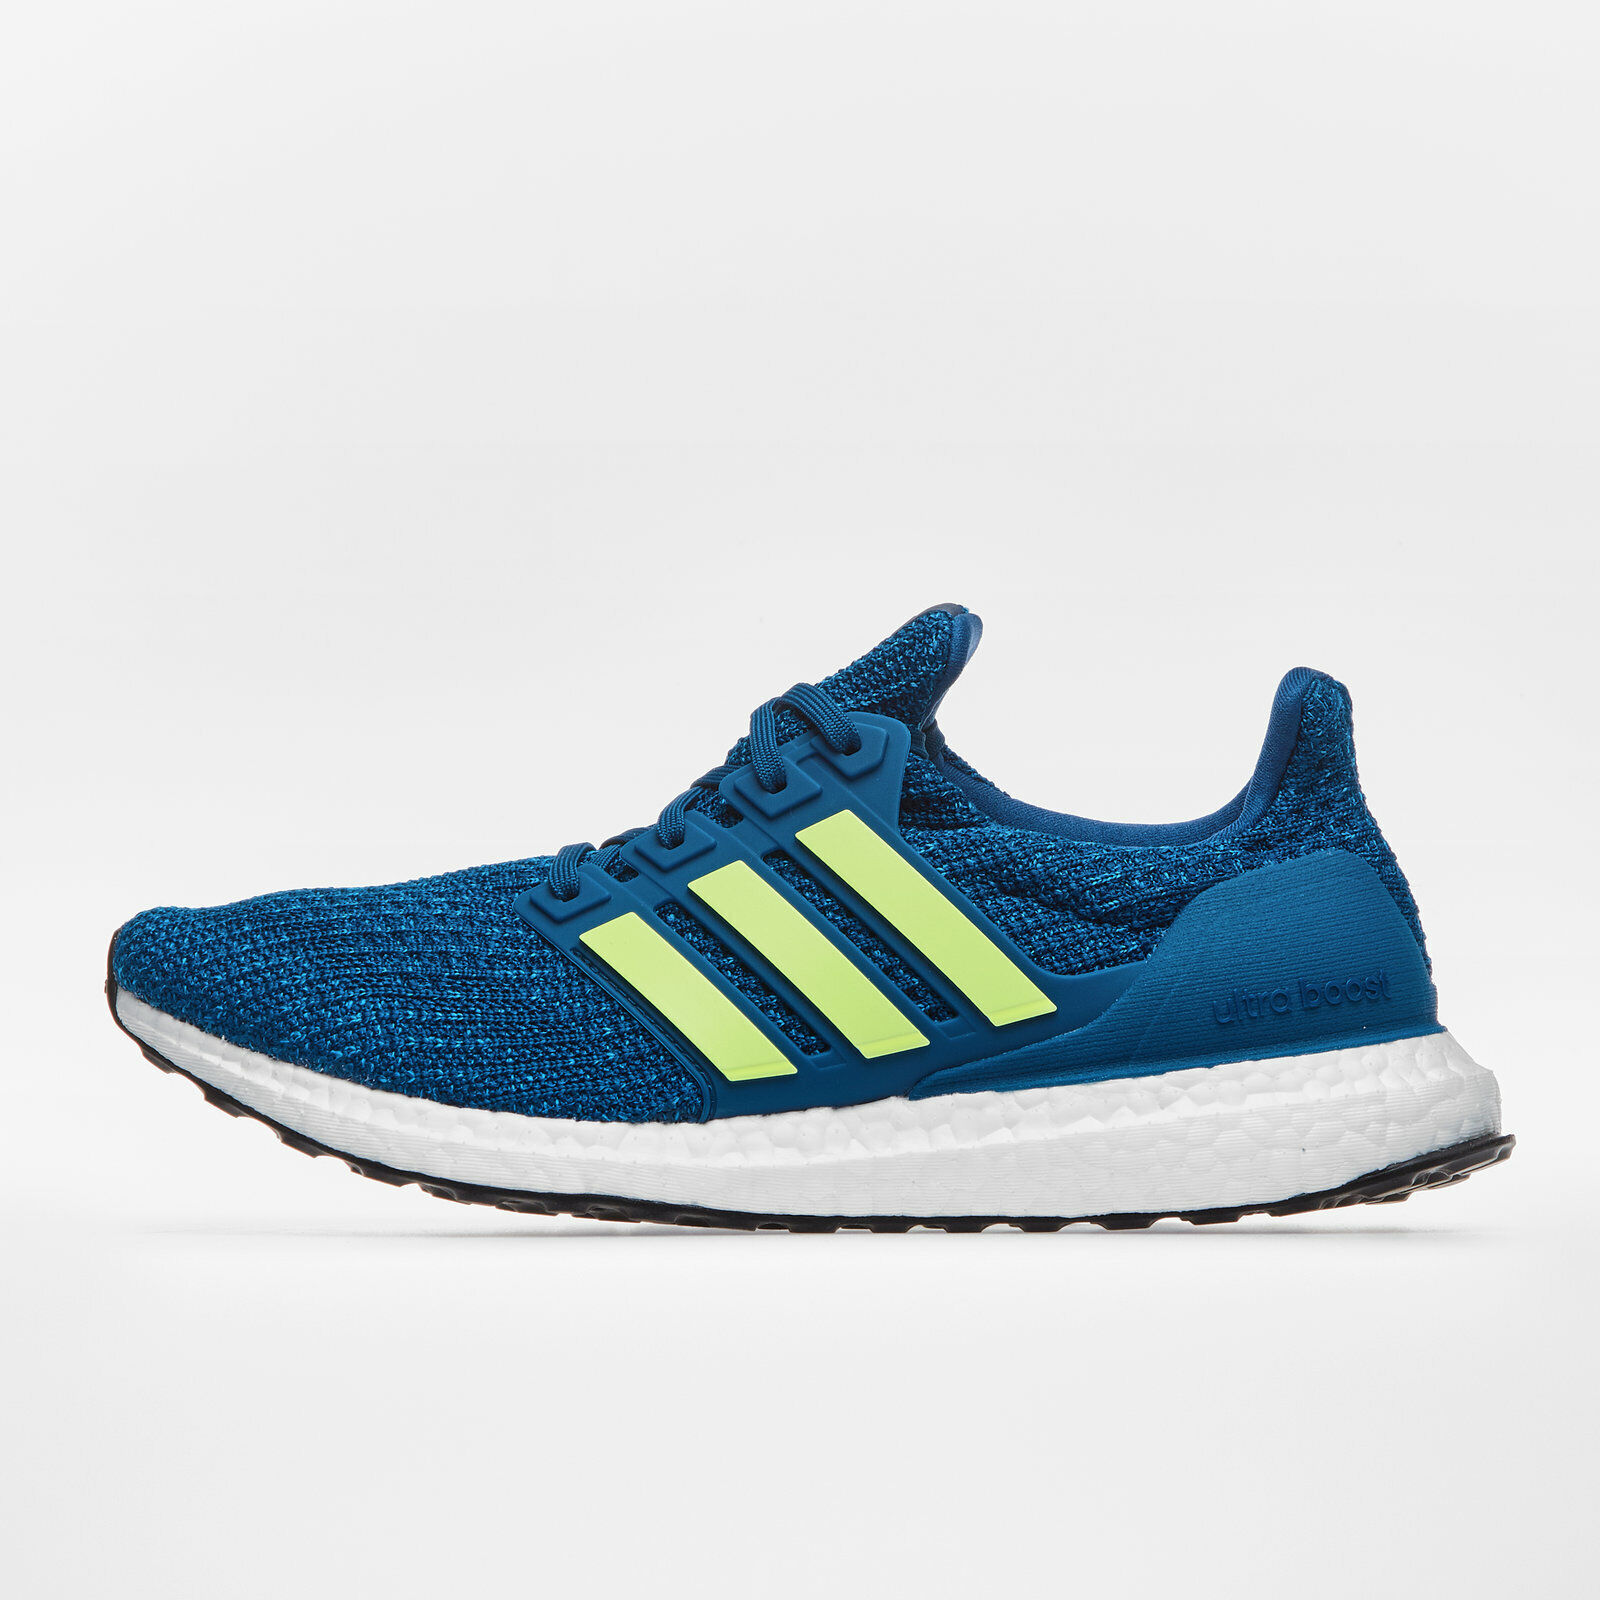 11597250810 Adidas Mens Ultra Boost Running shoes Jogging Footwear Sports Trainers bluee